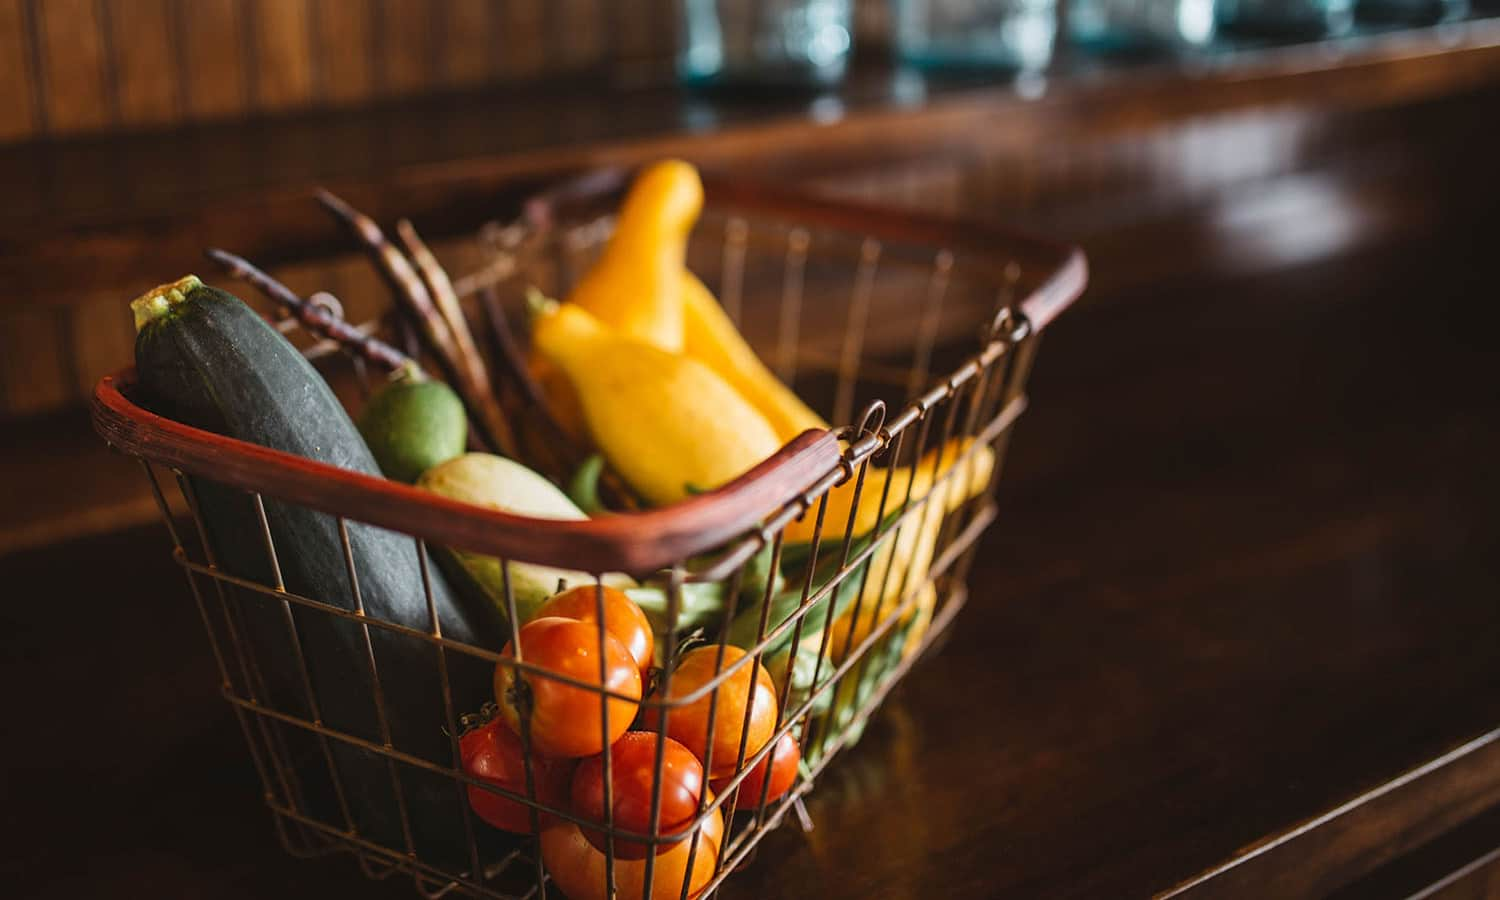 Dr. Urvashi Rangan discusses the challenges that consumers face when trying to make sustainable food choices, the power that their food choices hold in shaping our food system, and how FoodPrints can help.